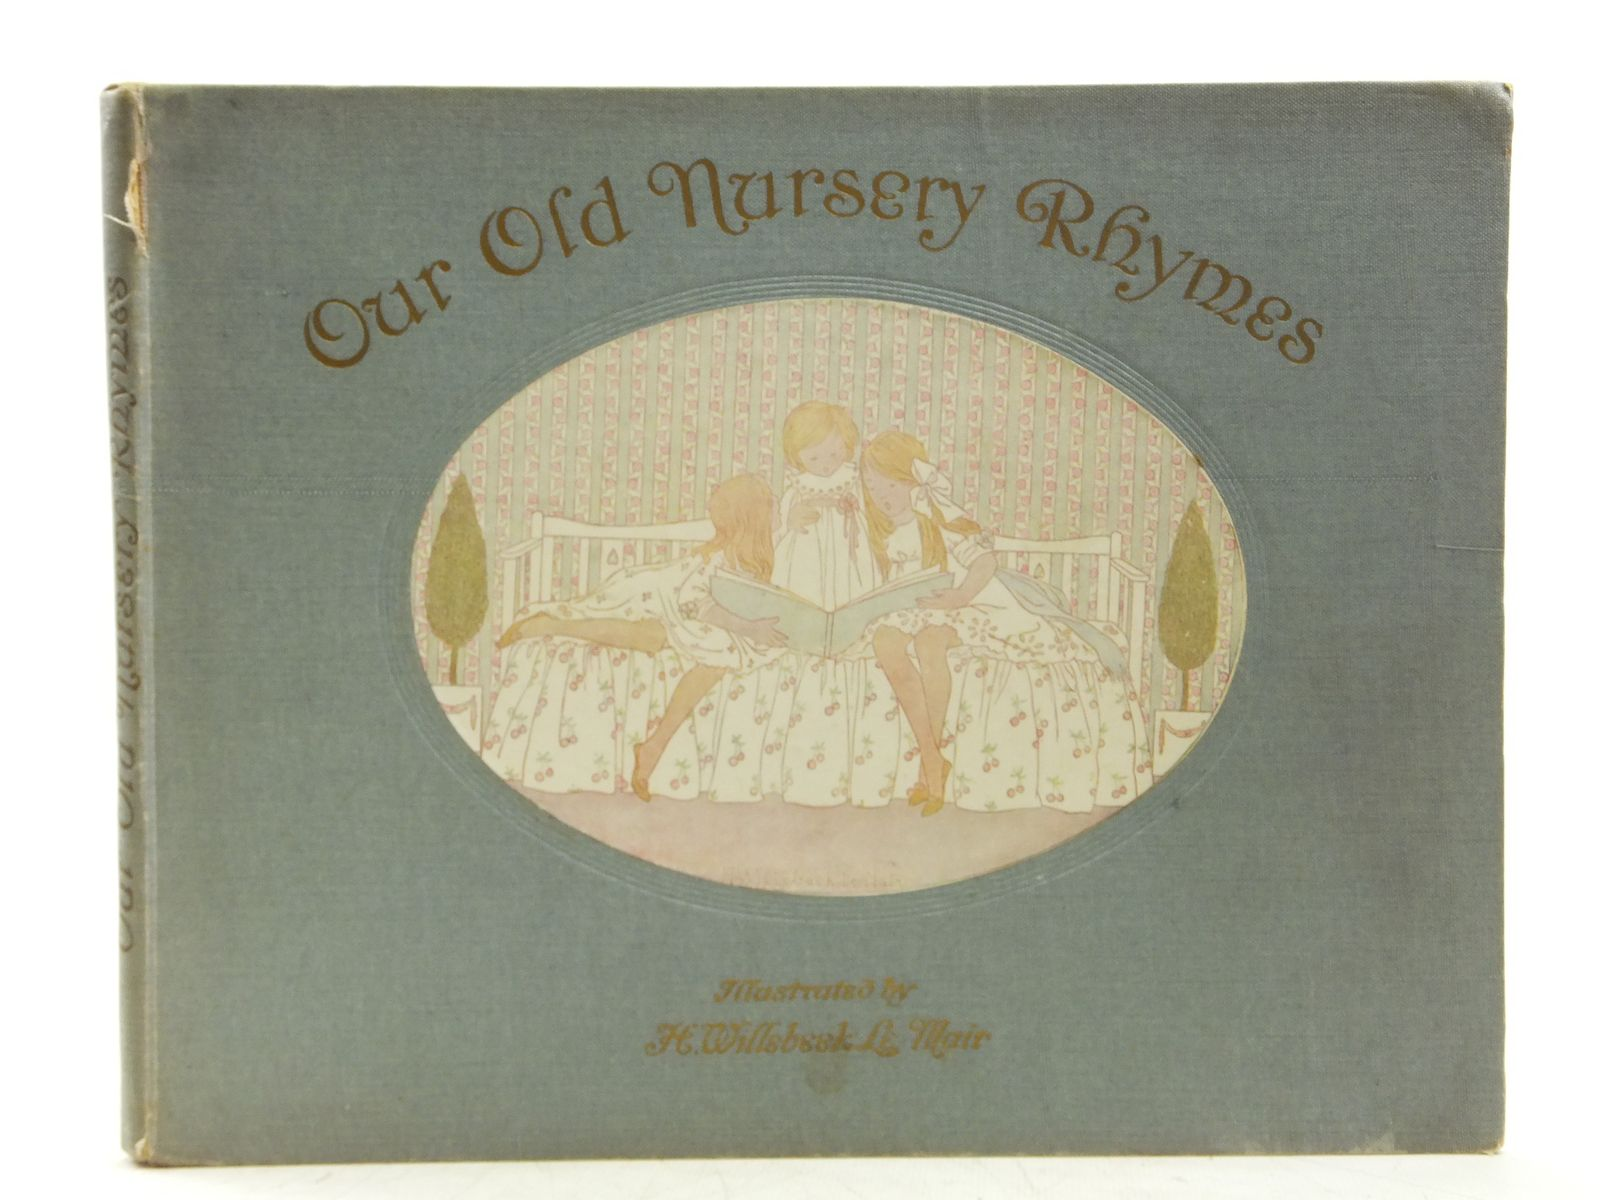 Photo of OUR OLD NURSERY RHYMES written by Moffat, Alfred illustrated by Willebeek Le Mair, Henriette published by Augener Ltd. (STOCK CODE: 2119721)  for sale by Stella & Rose's Books